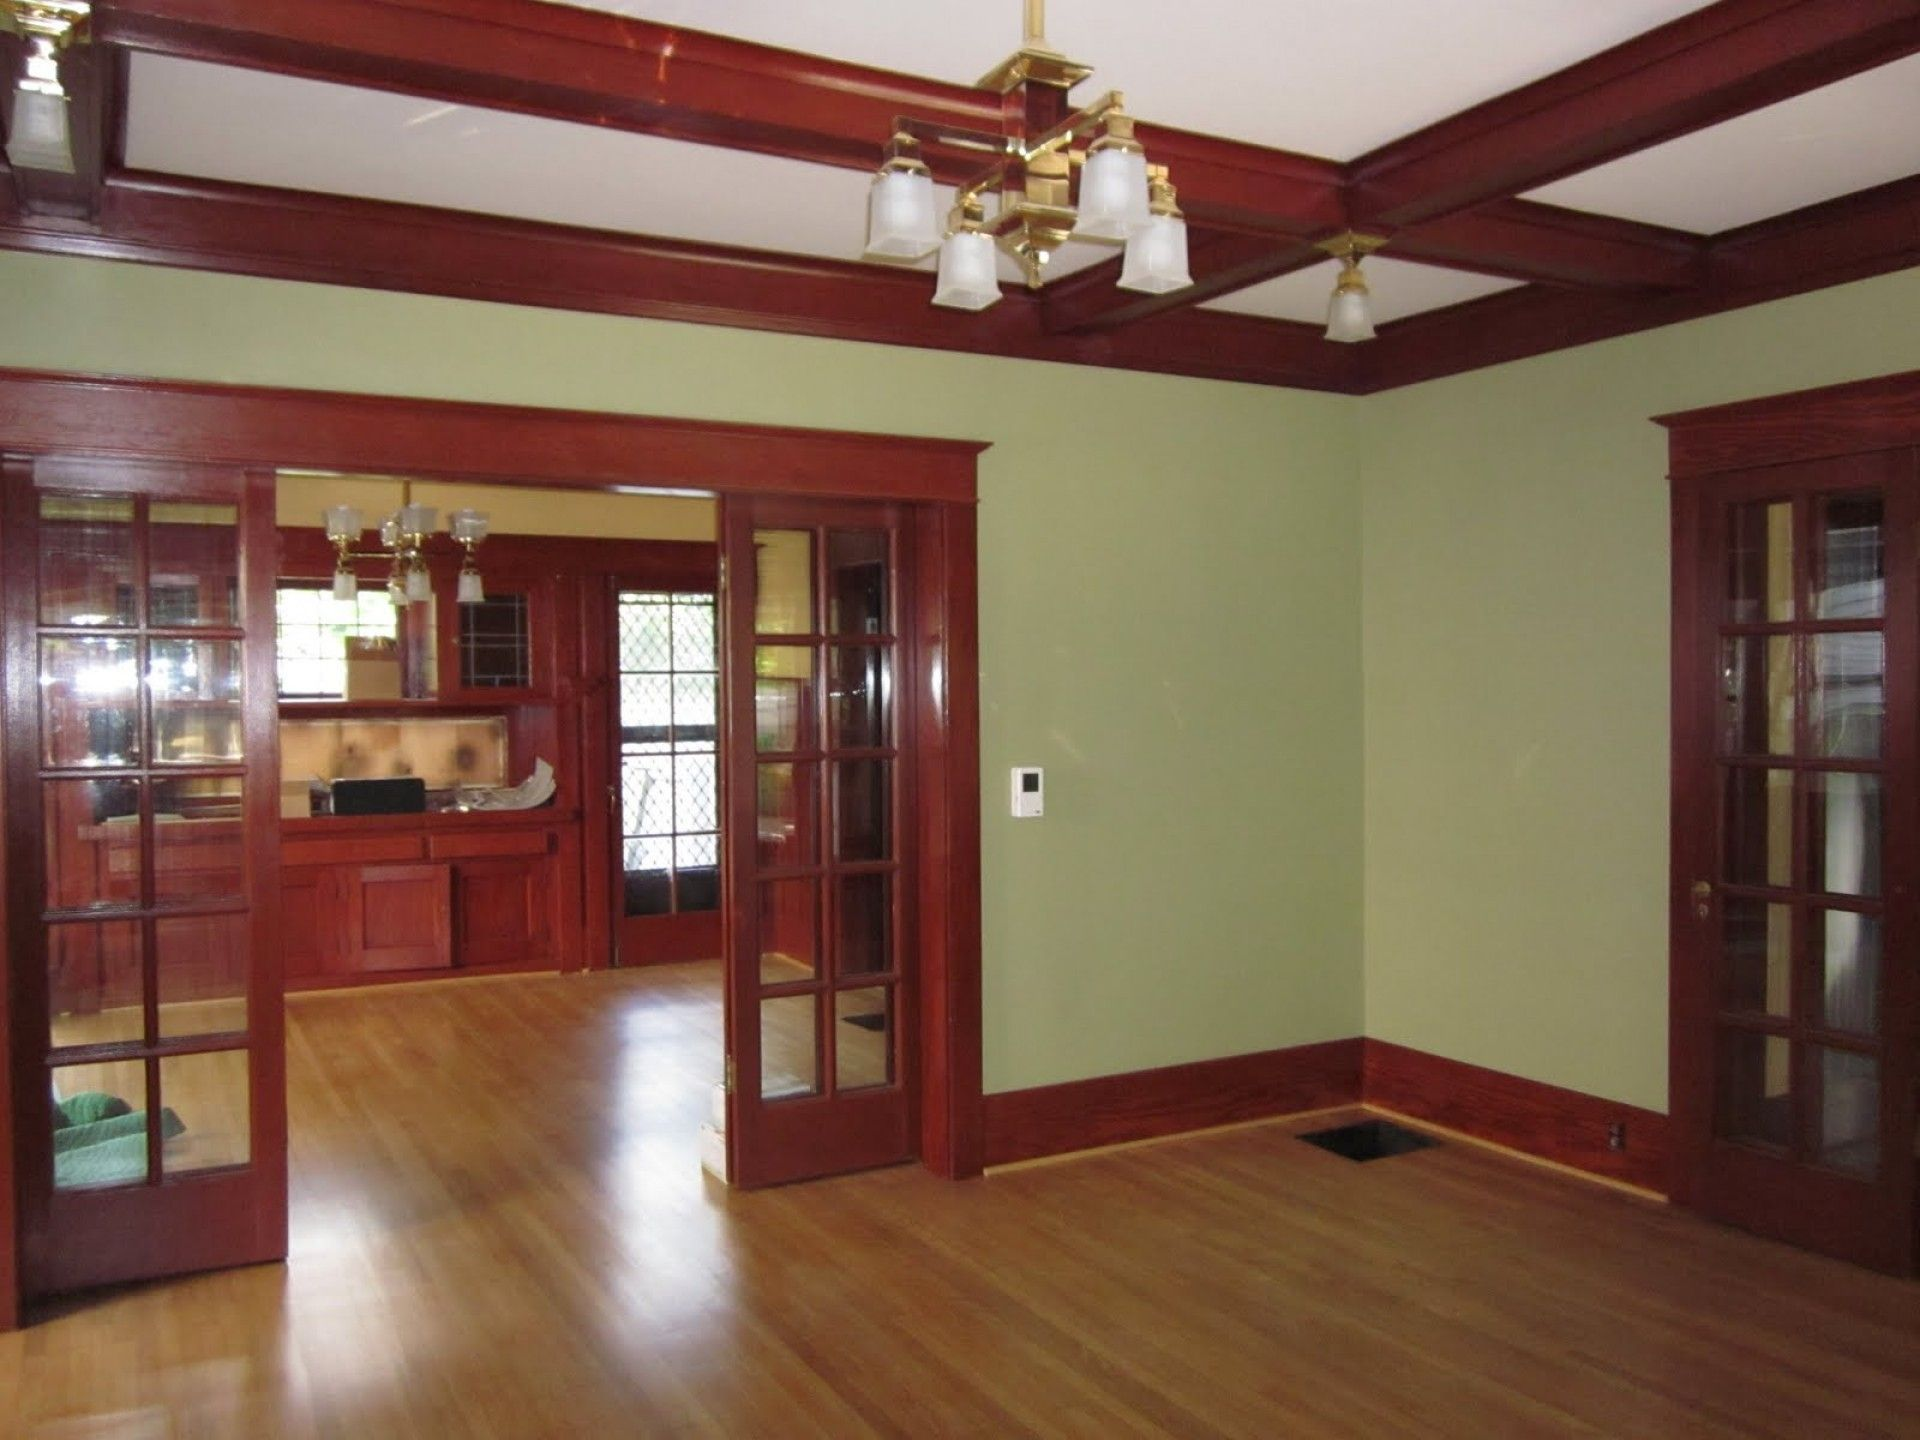 craftsman interior paint colors bedroom craftsman on interior color schemes id=24286